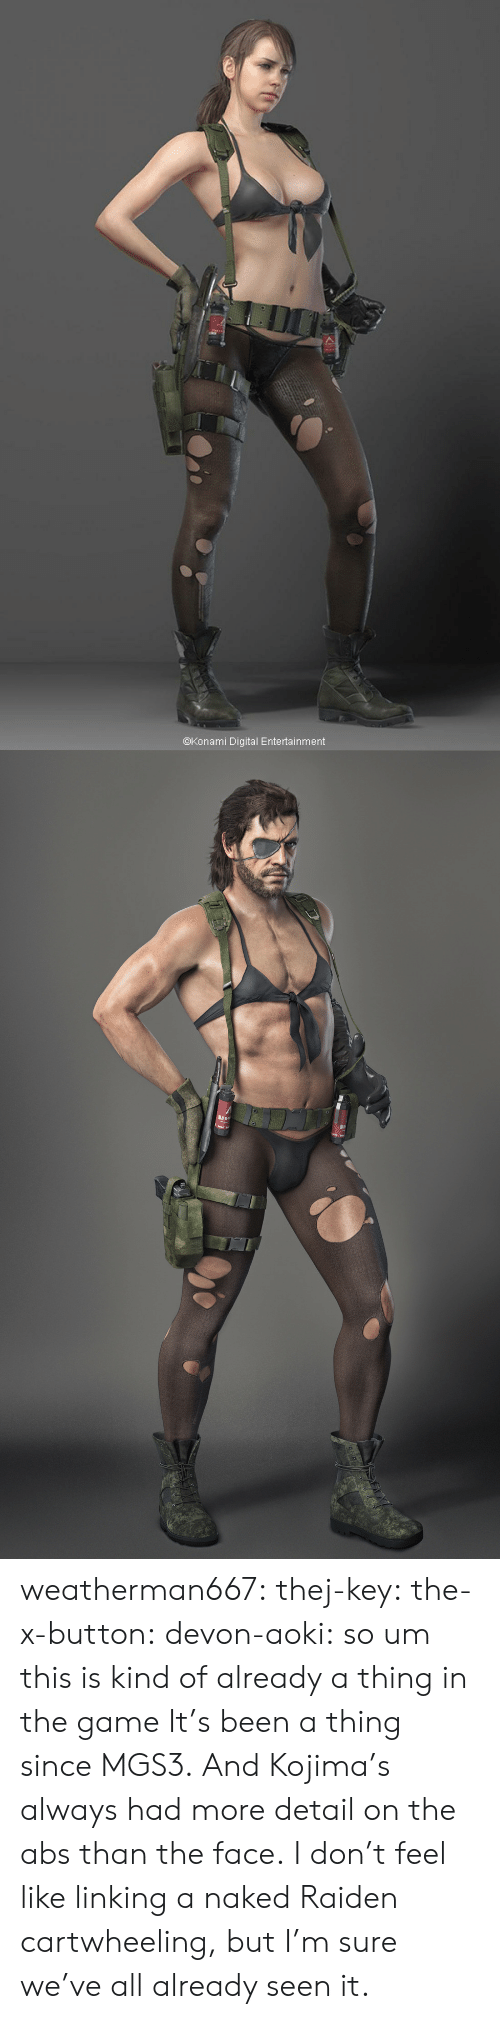 Kojima: @Konami Digital Entertainment weatherman667: thej-key:  the-x-button:  devon-aoki:  so um this is kind of already a thing in the game   It's been a thing since MGS3. And Kojima's always had more detail on the abs than the face.  I don't feel like linking a naked Raiden cartwheeling, but I'm sure we've all already seen it.